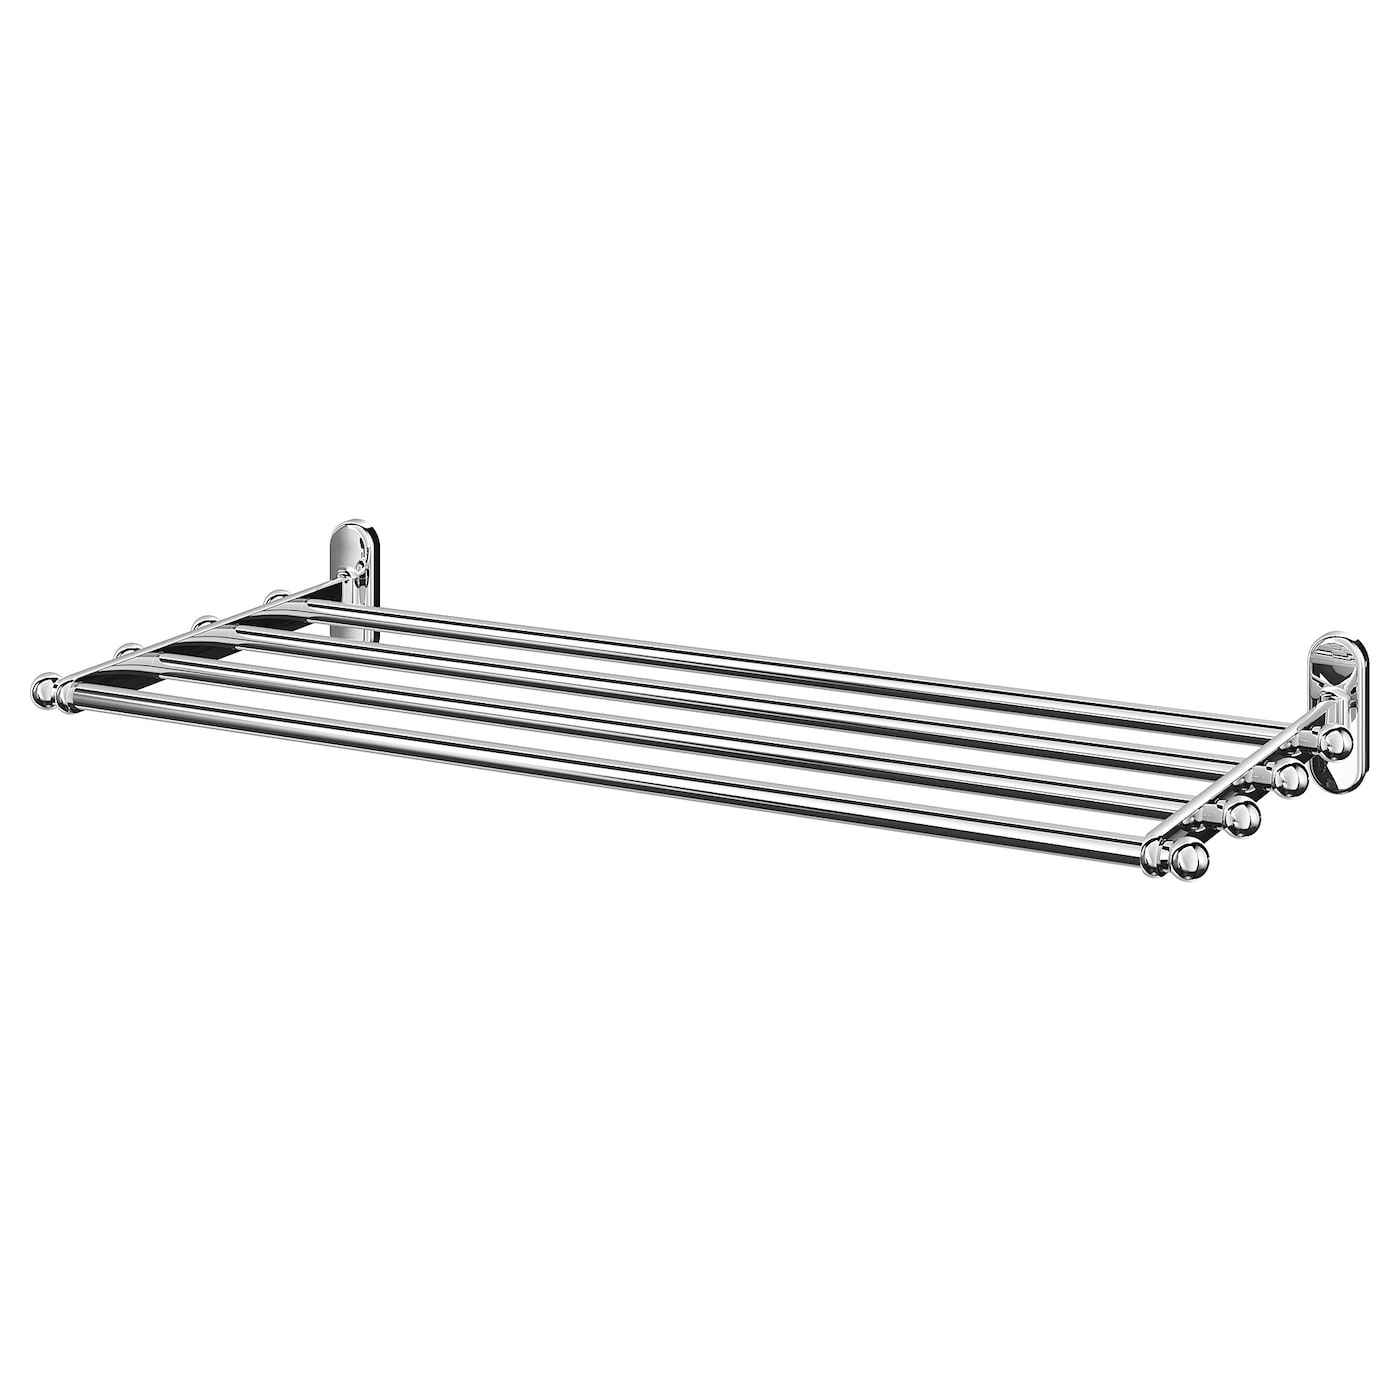 IKEA VOXNAN wall shelf with towel rail No visible screws, as the fixings are concealed.